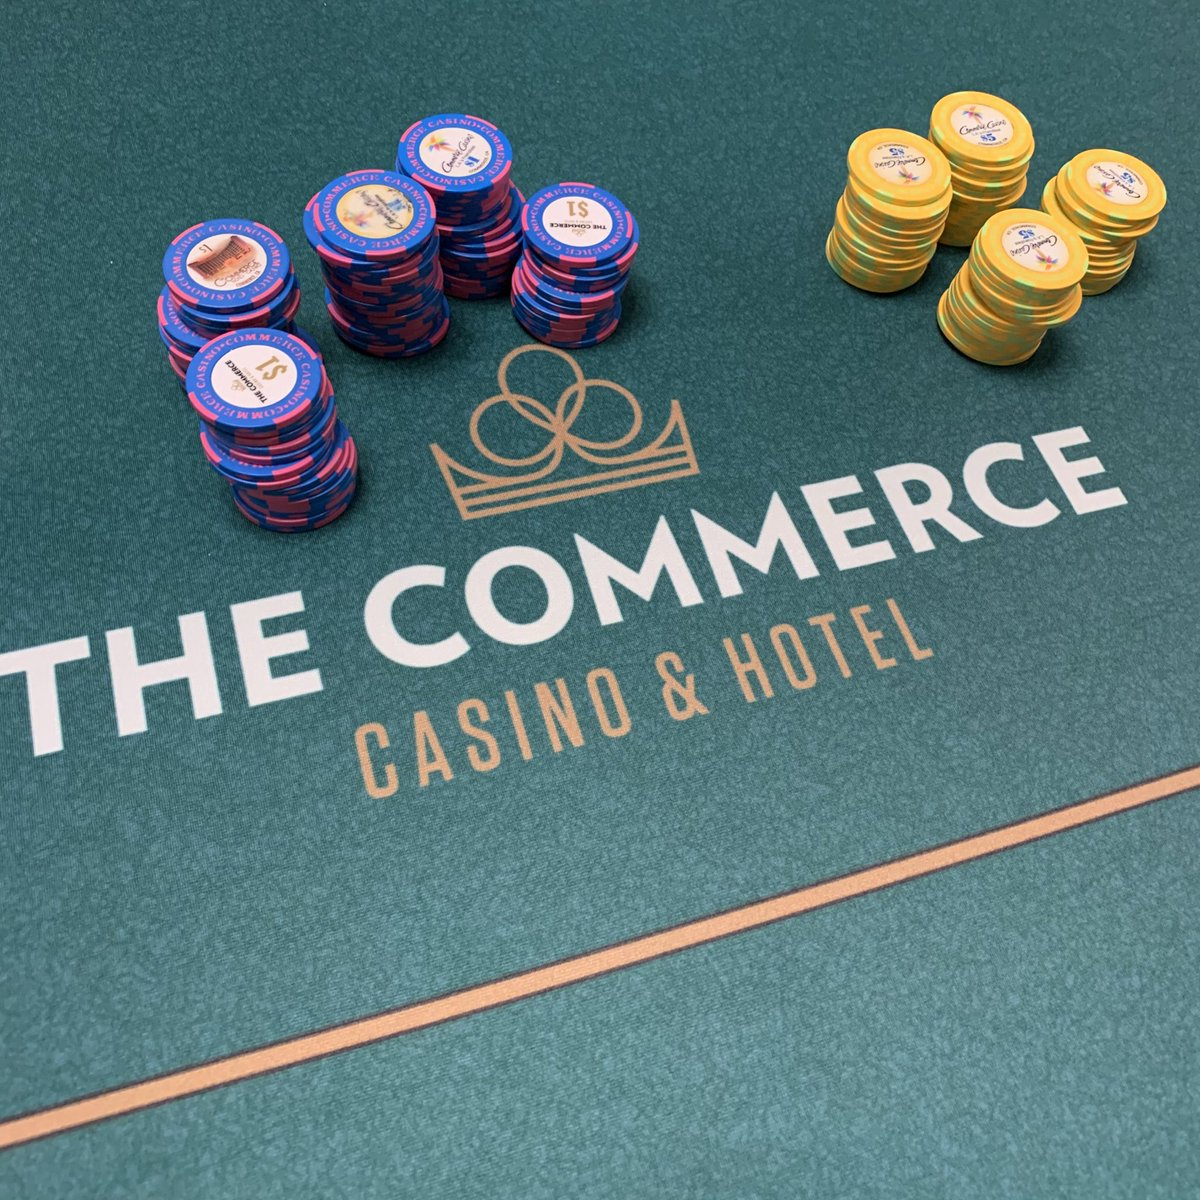 The game is ON at The Commerce. #commercecasino #wherethegamereigns